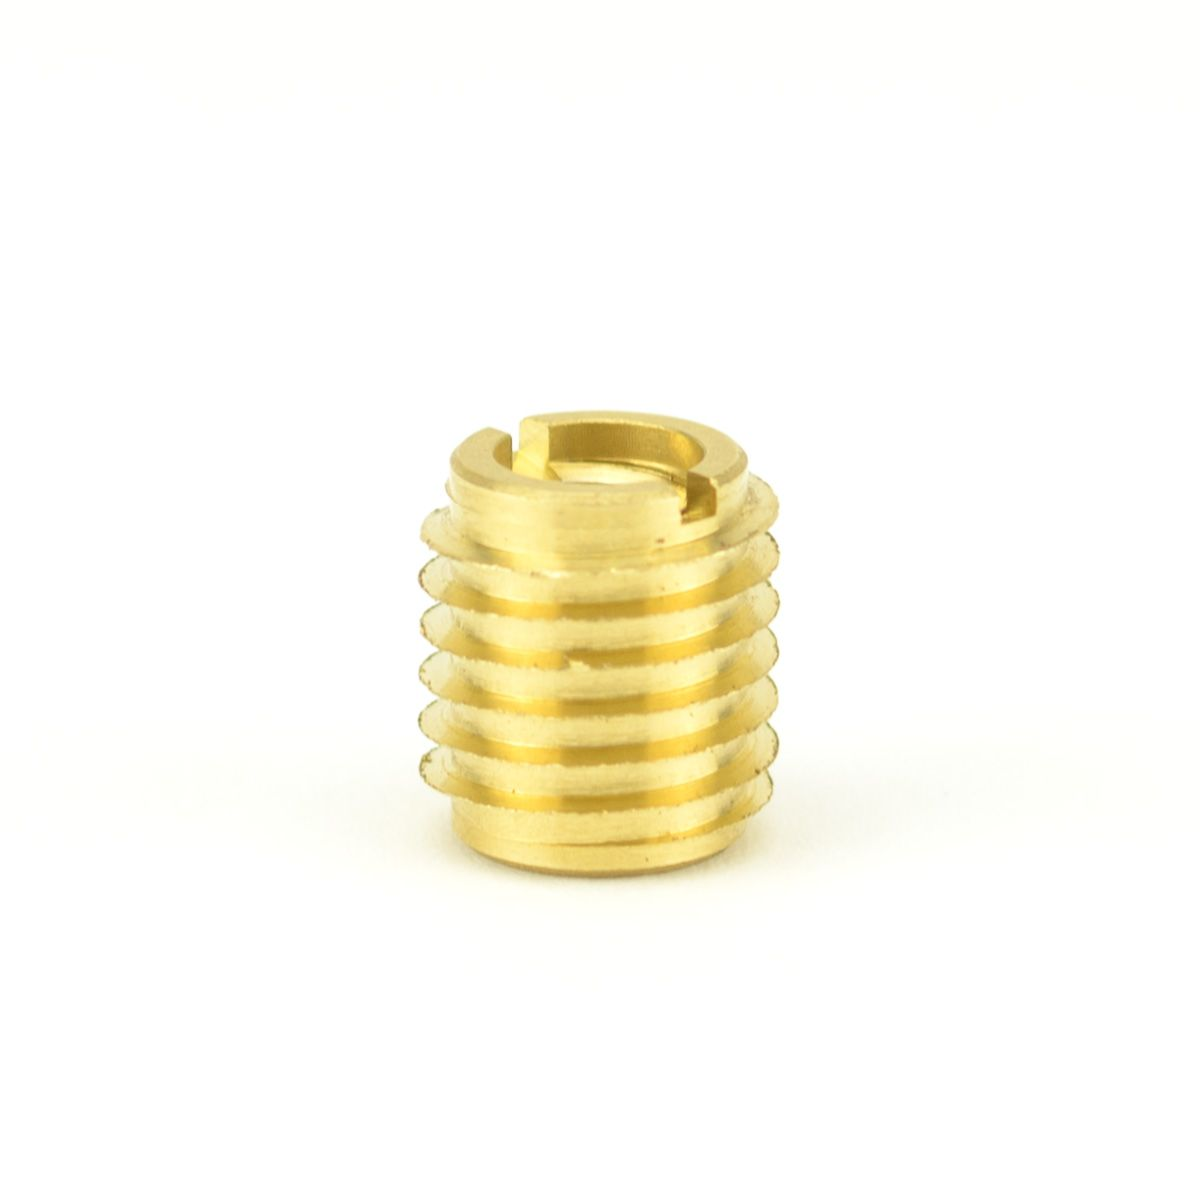 FlowerPot Threaded Insert for Heater Coil Post (9304) - Vapefiend UK